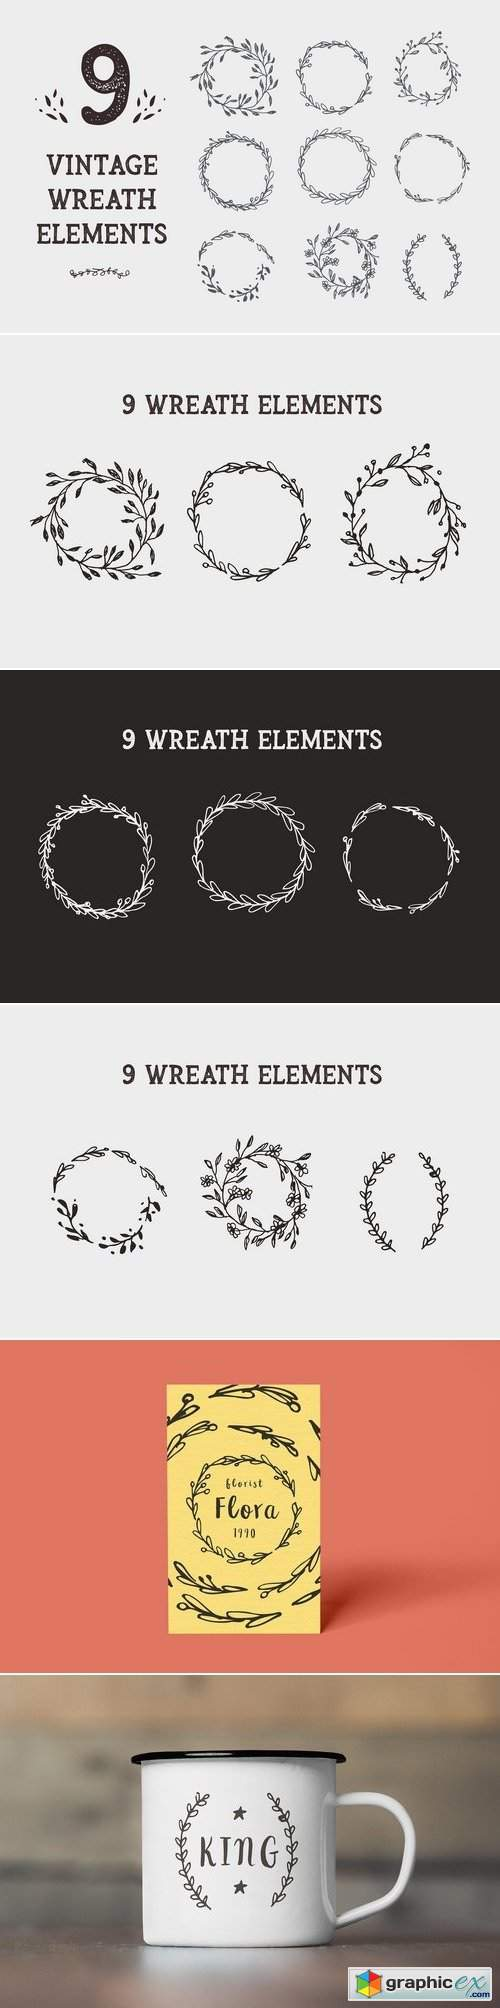 9 Vintage Wreath Graphic Design Elem